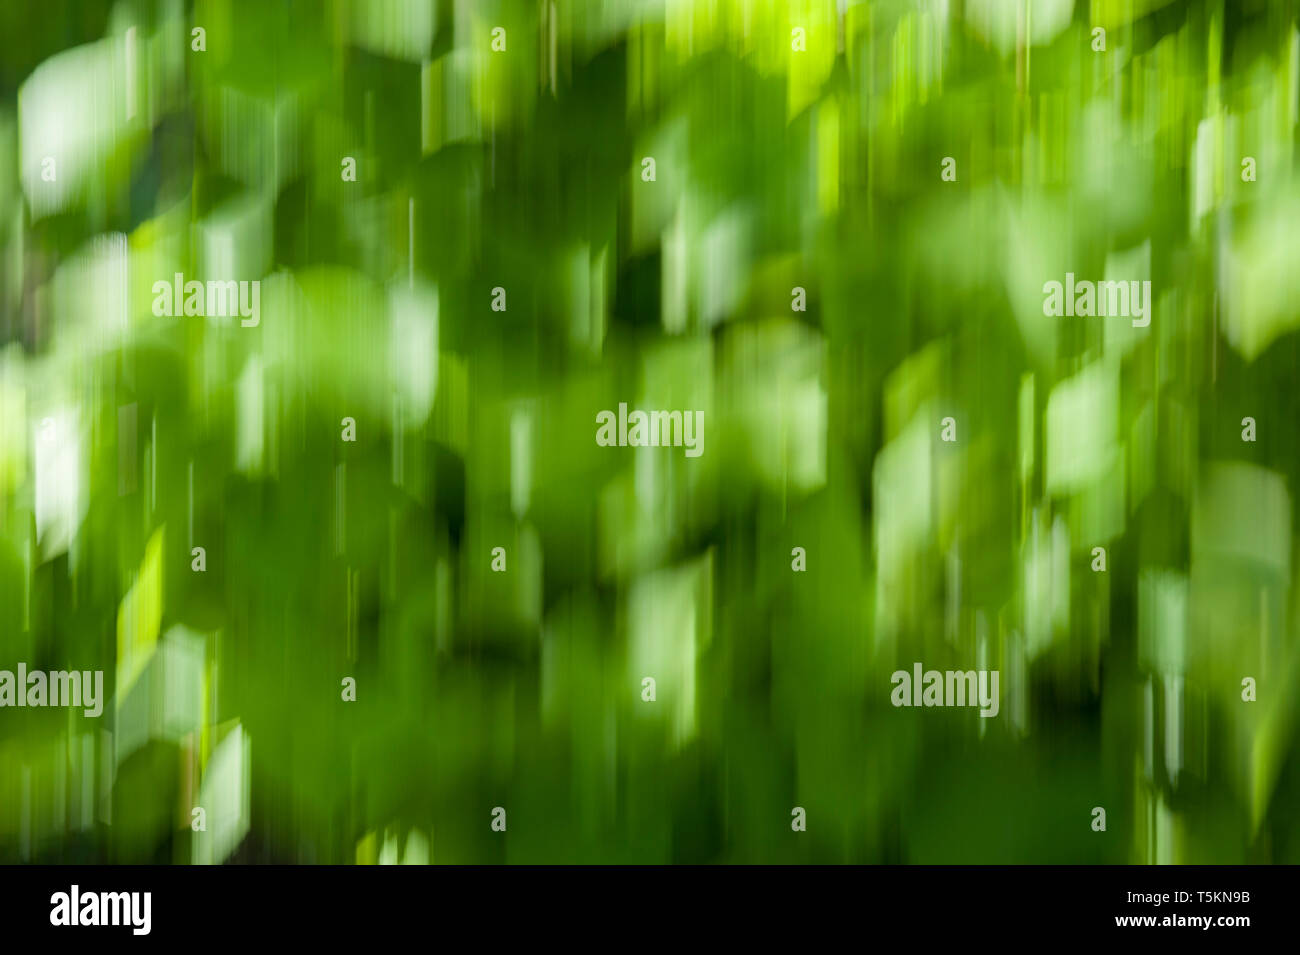 motion blur background, green bokeh background - blurred leaves - Stock Image